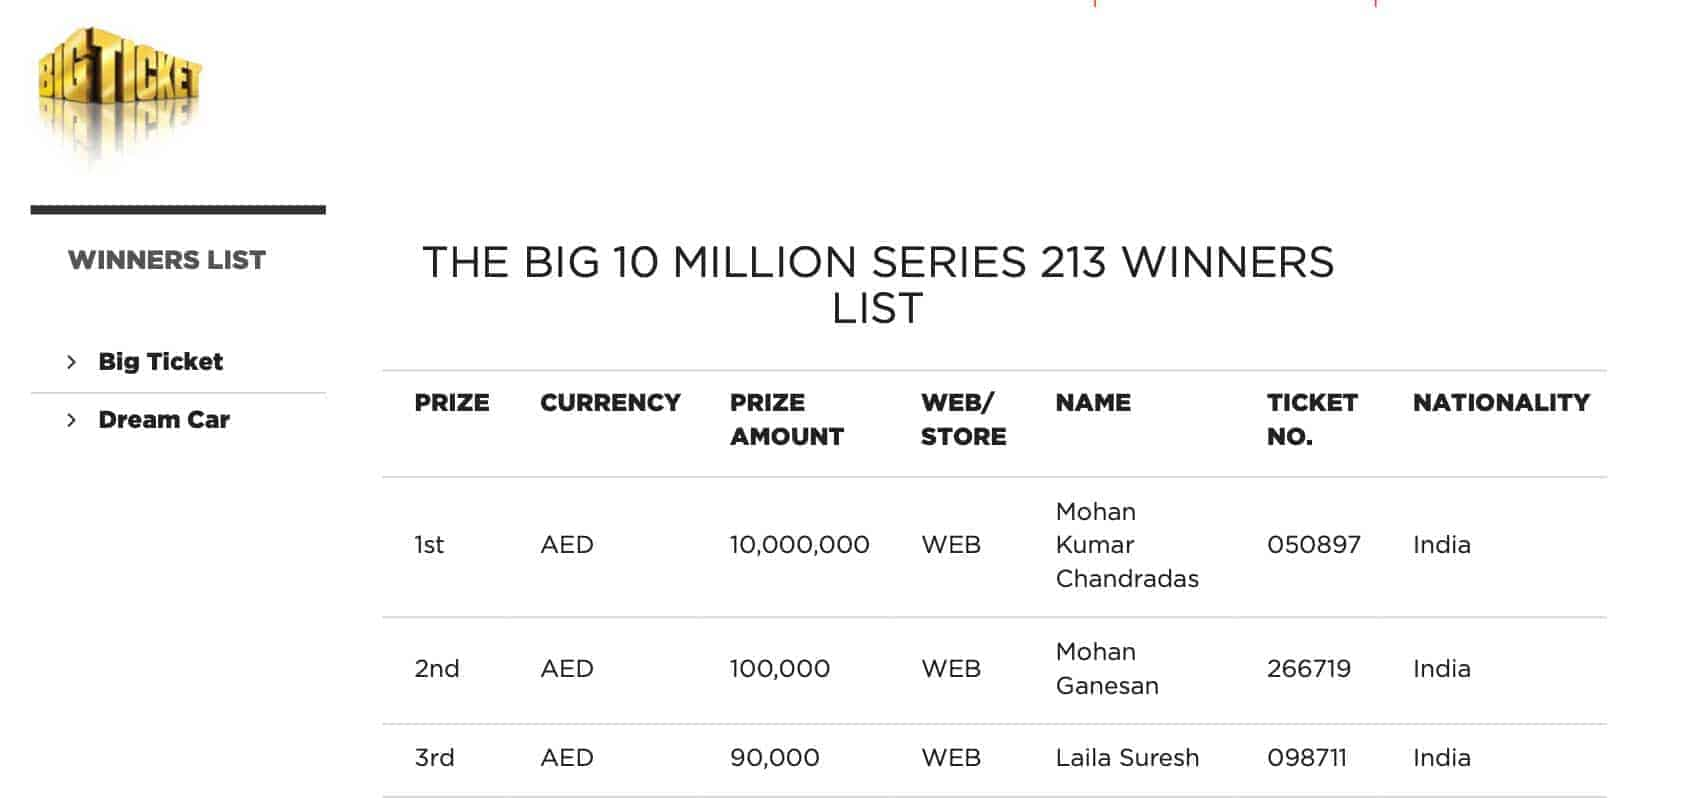 list of indian big ticket winners